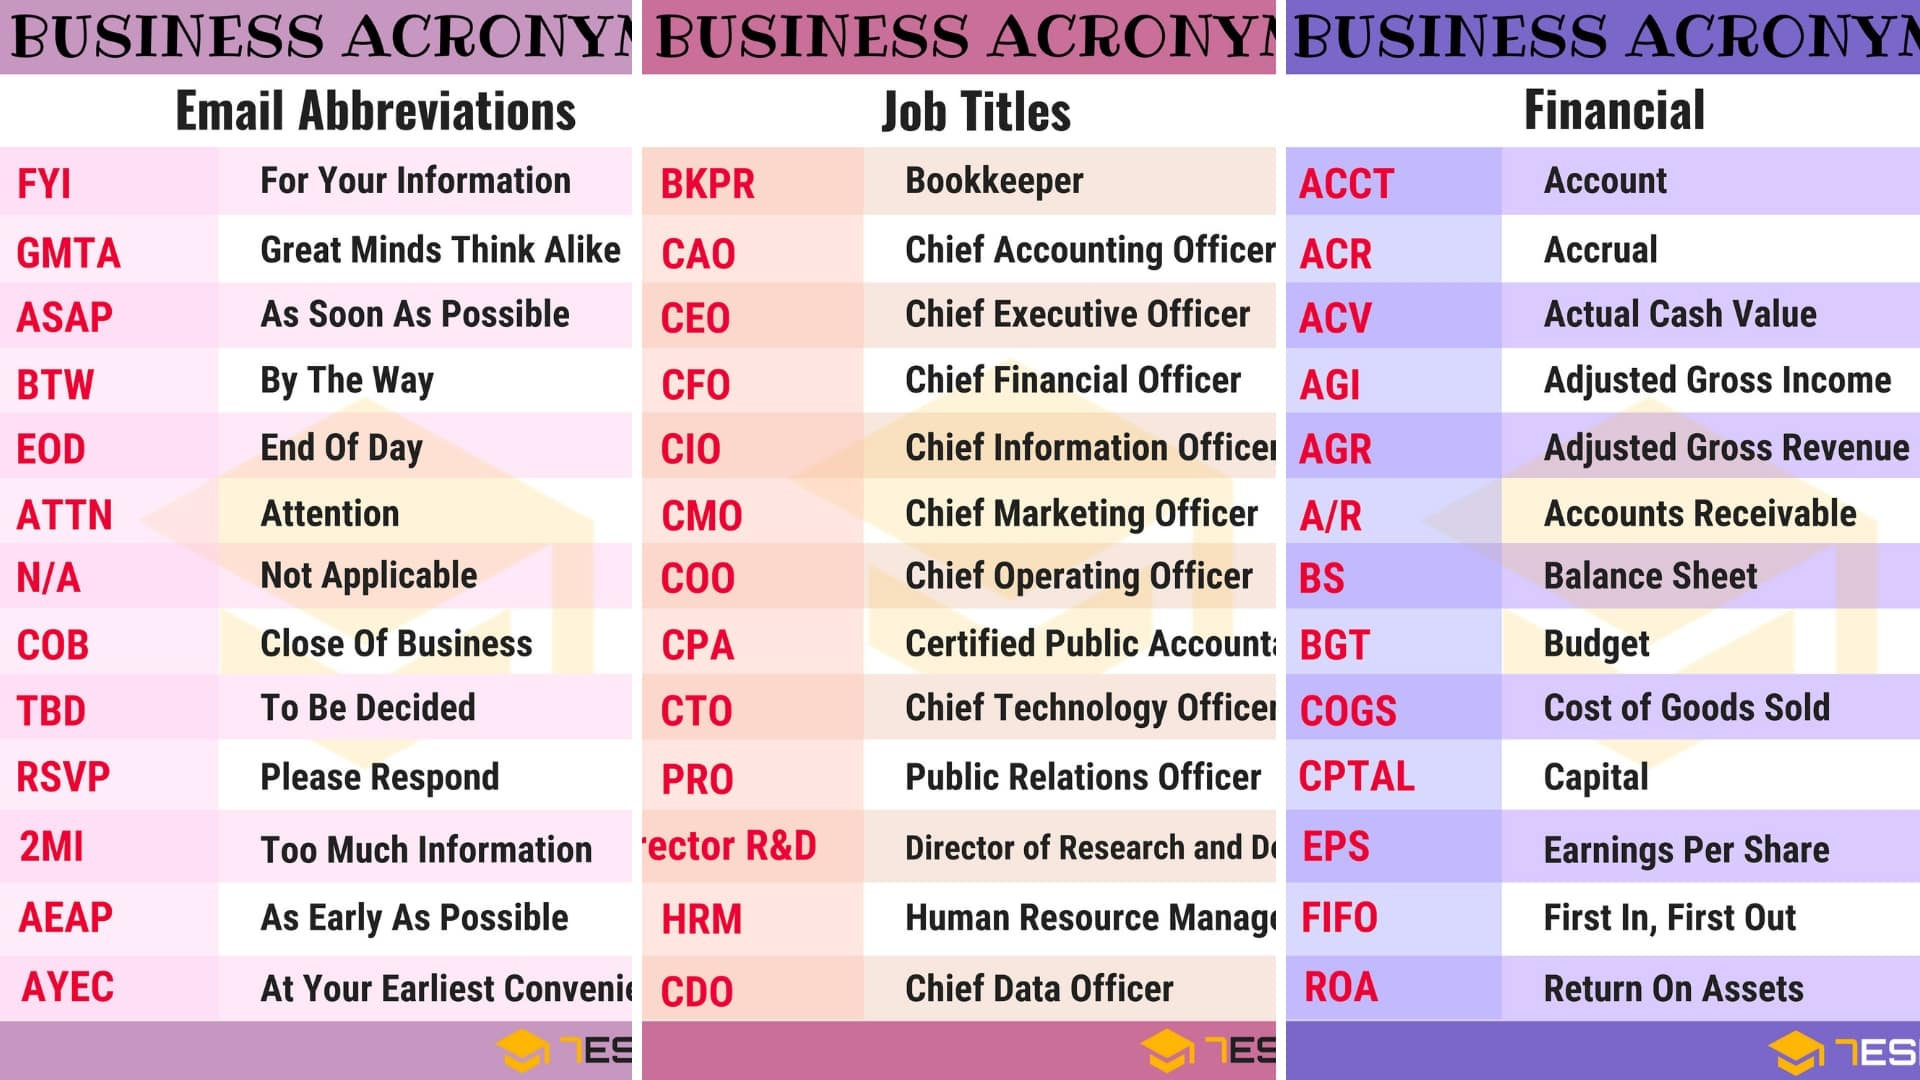 250+ Common Business Acronyms, Abbreviations and Slang Terms 1